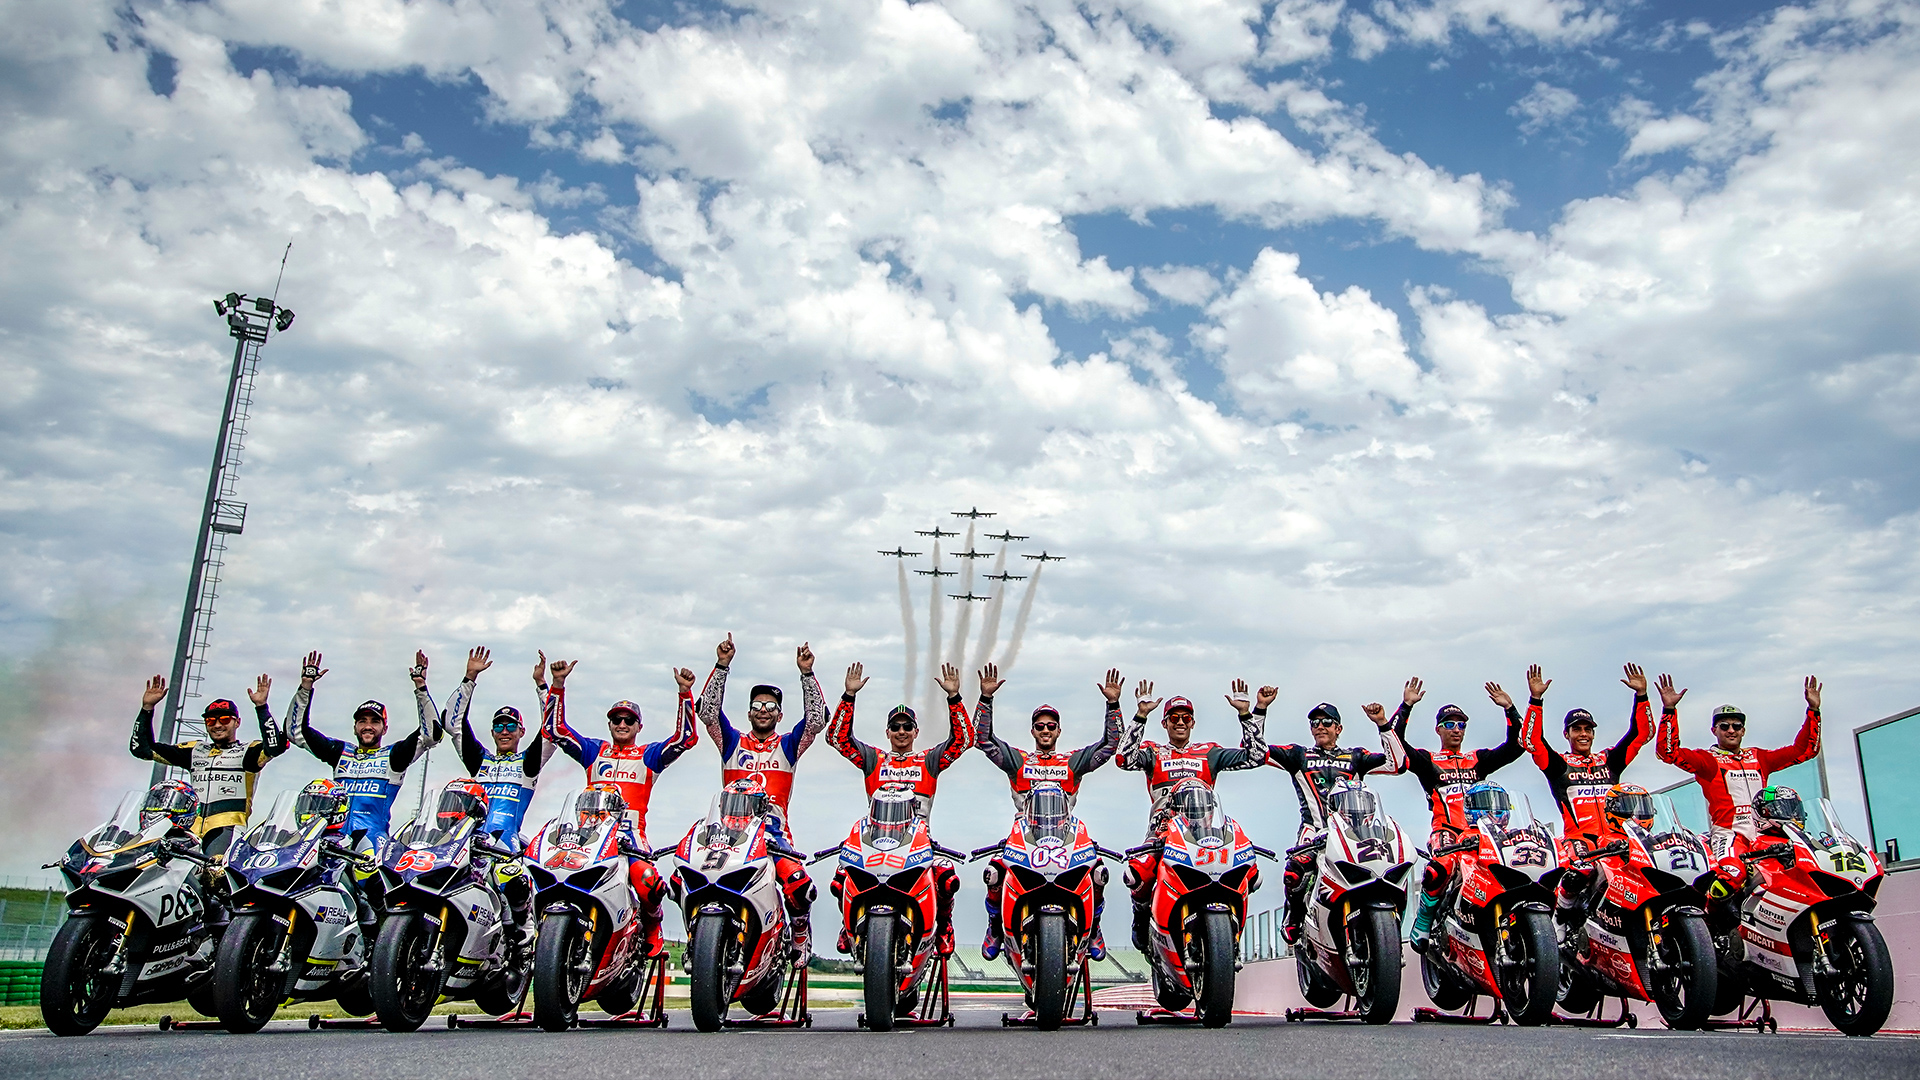 World Ducati Week 2018, the Frecce Tricolori salute the red event with record numbers.